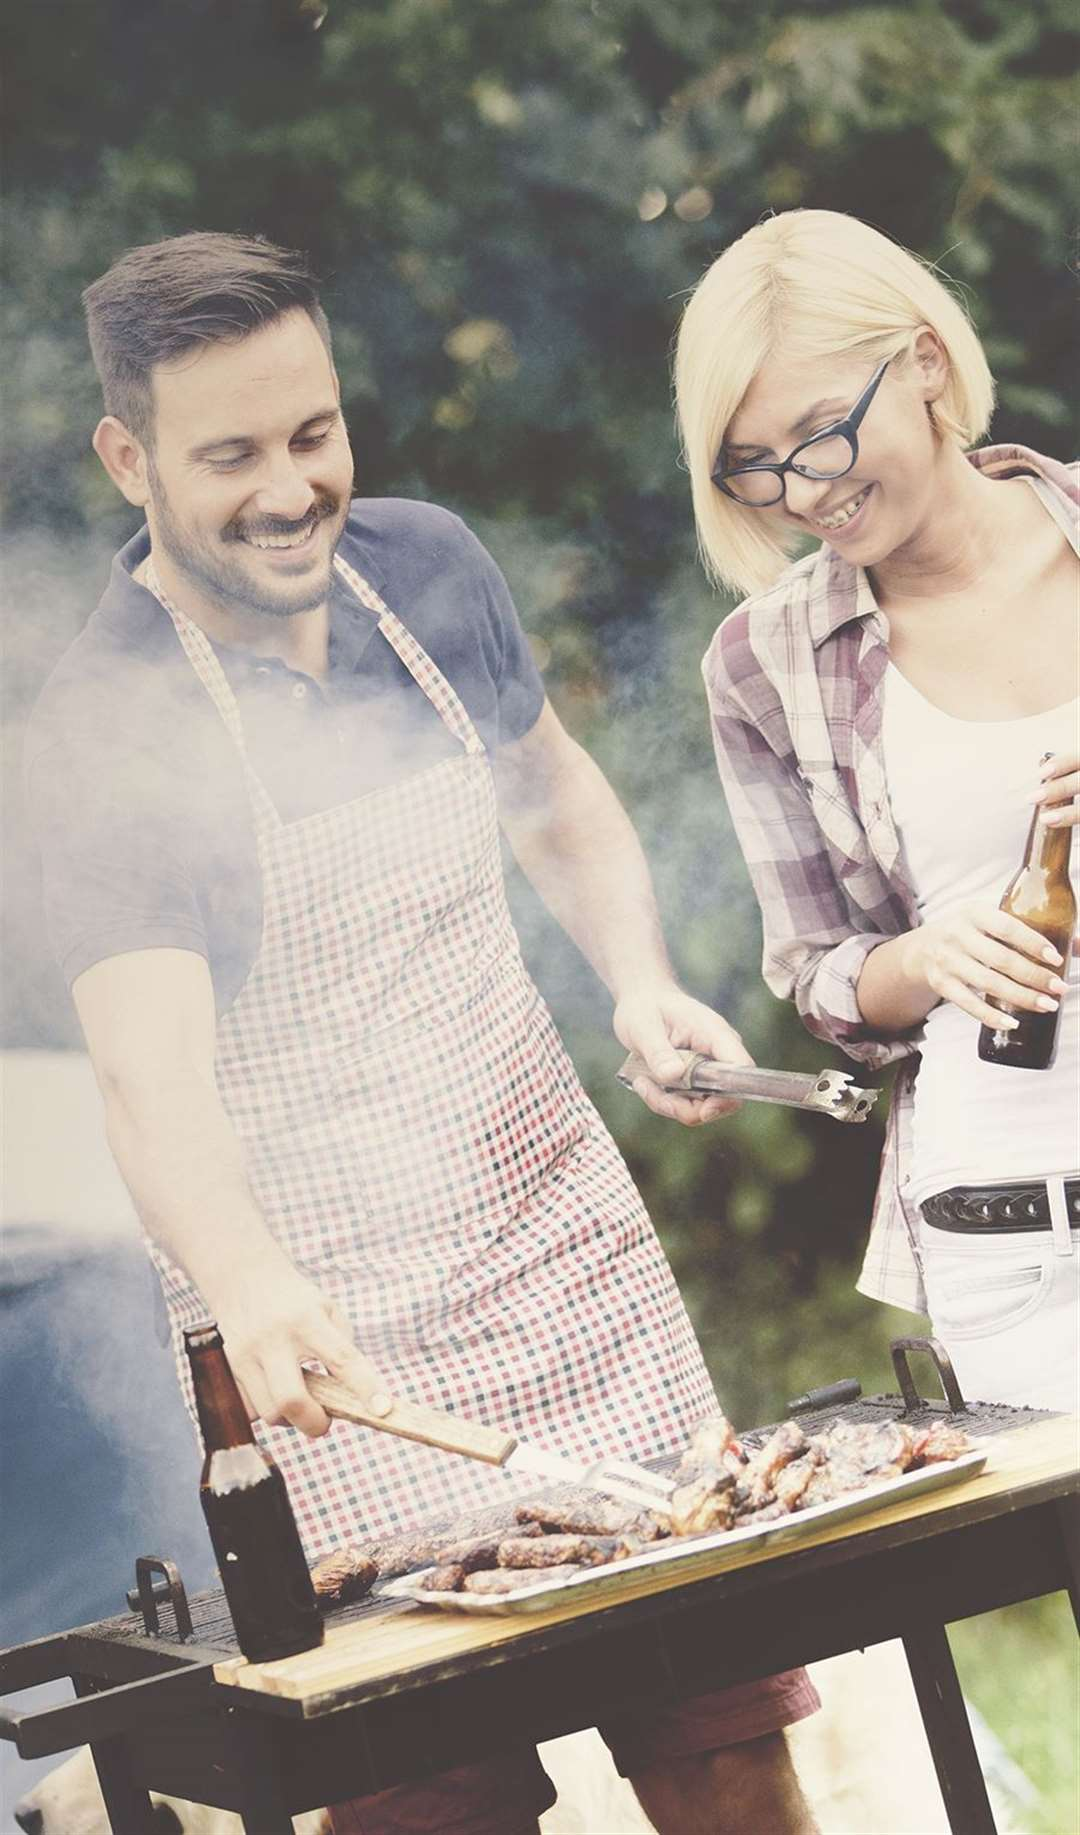 National BBQ Week is coming